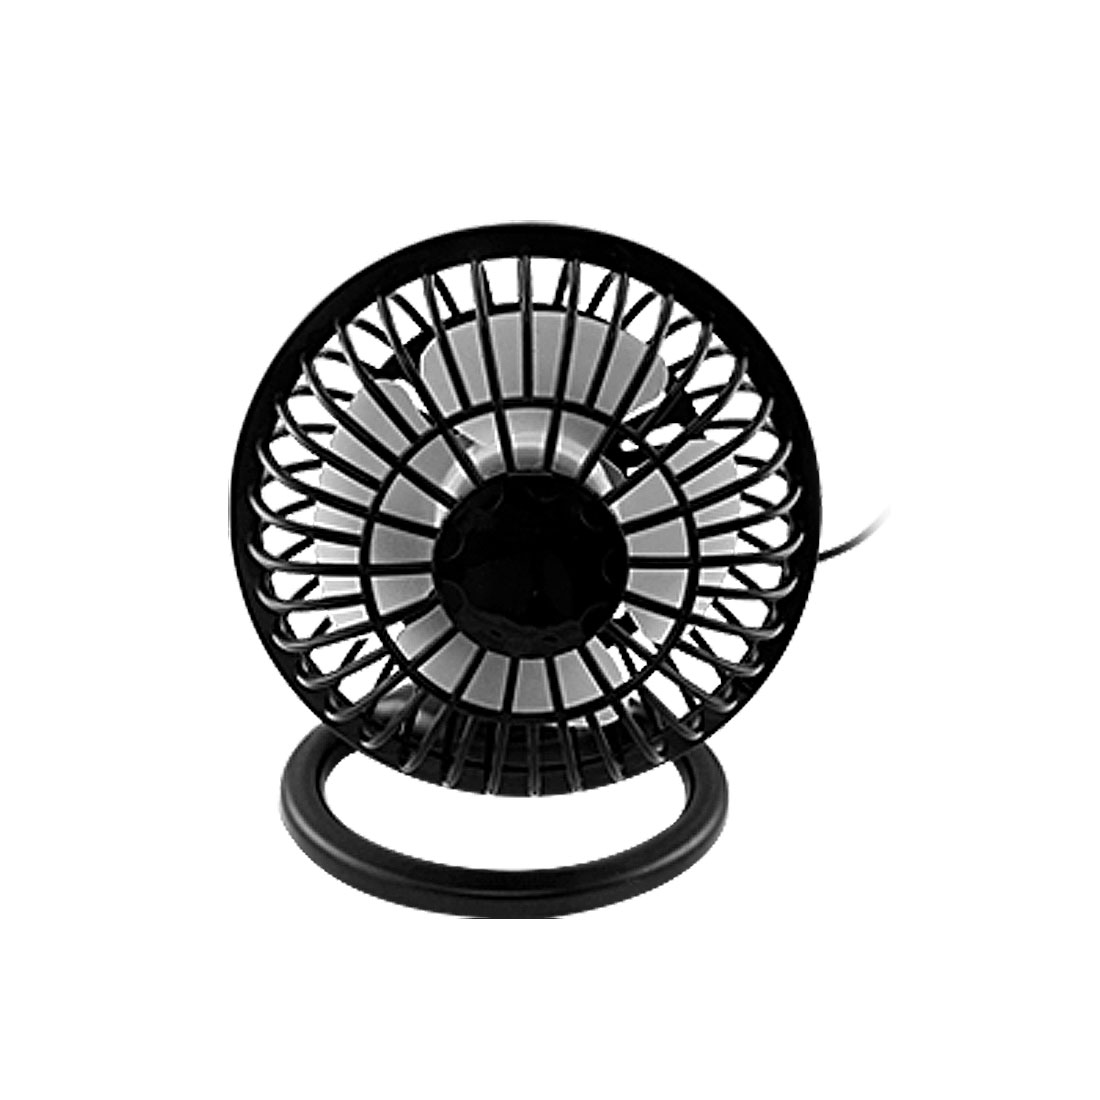 Adjustable Angle Black Plastic Mini USB Desk Table Fan